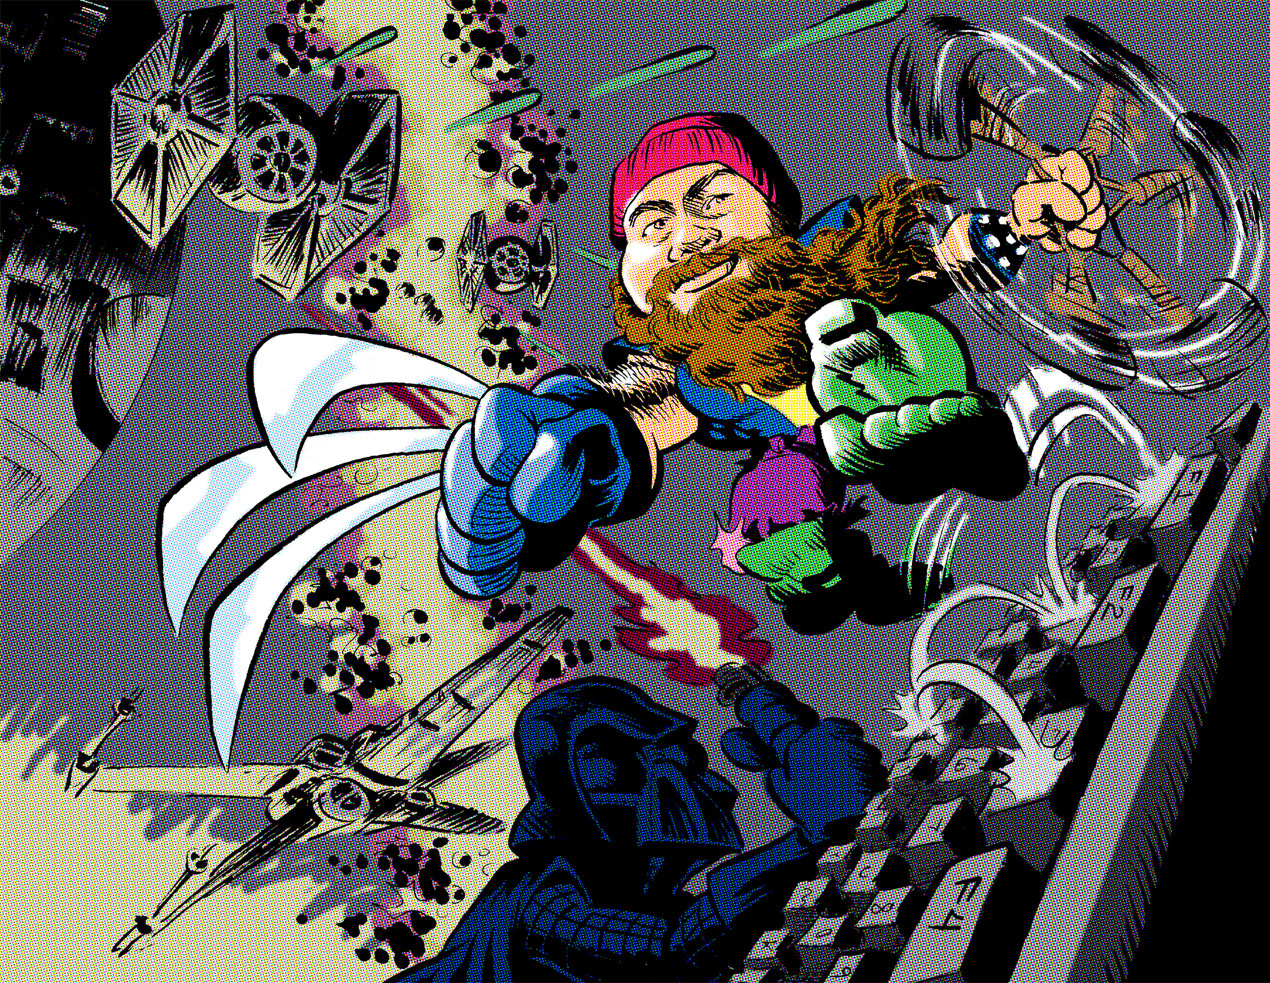 Illustration of Jason Aaron as combination of superheroes fighting Darth Vader on computer keyboard; illustration by Tim Rocks